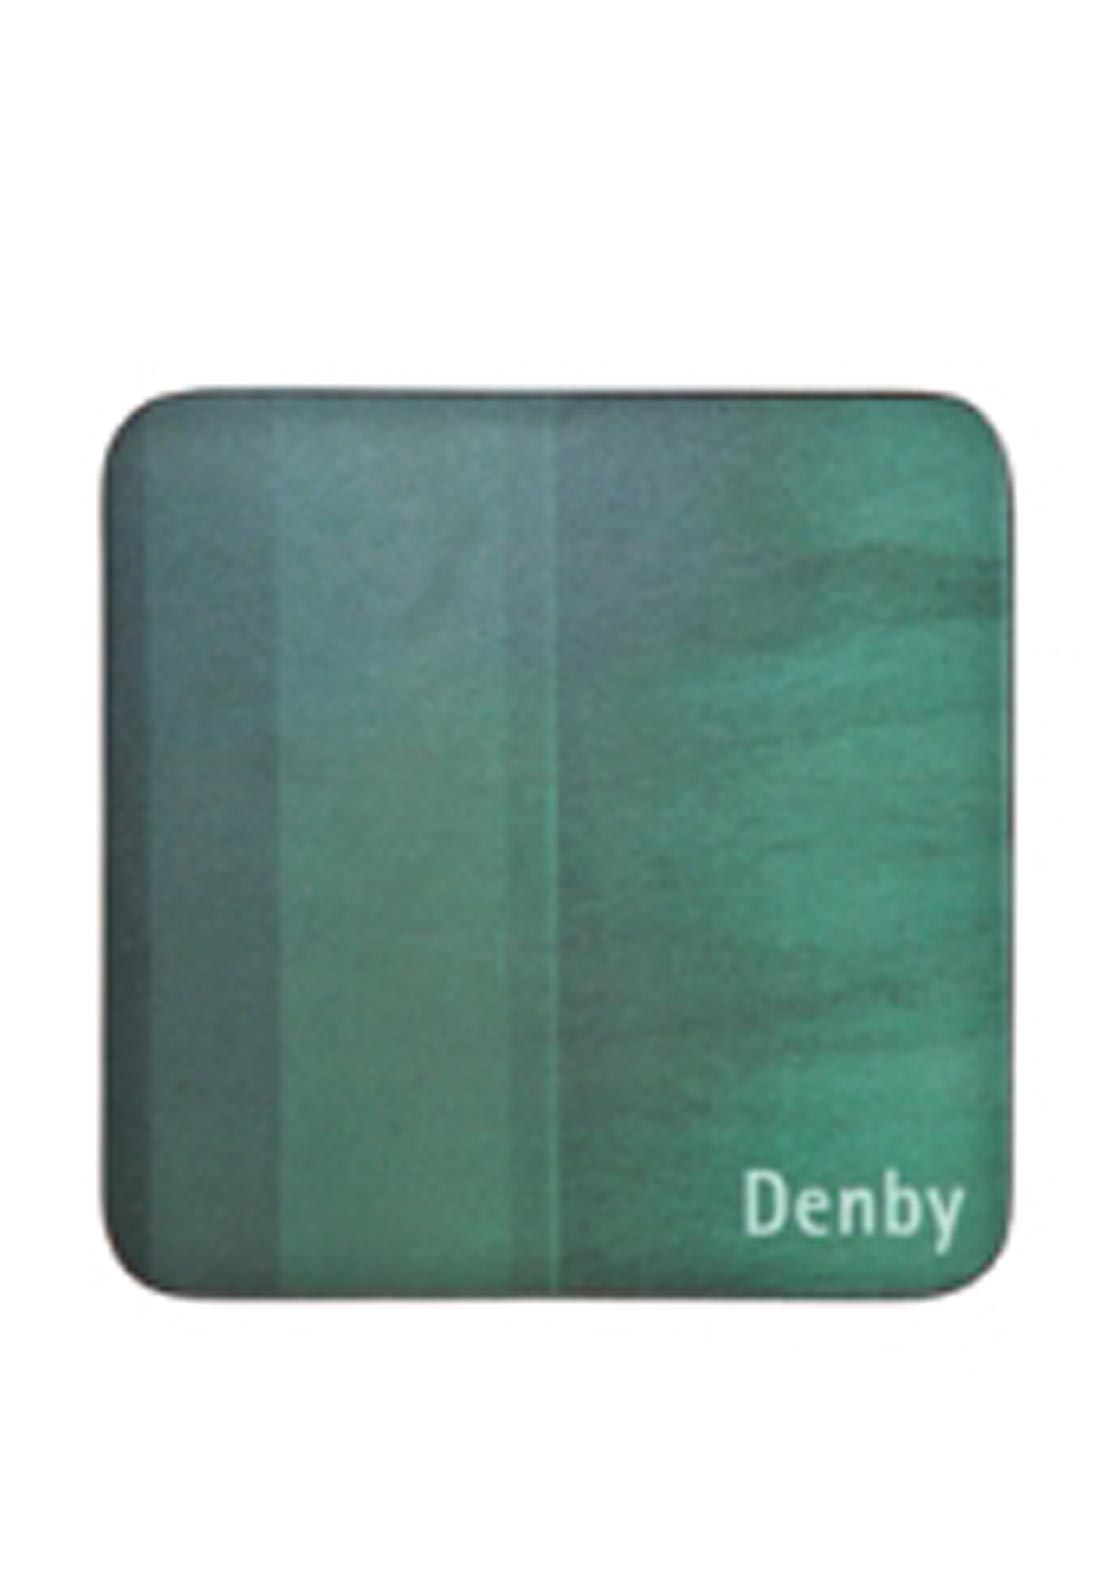 Denby Lifestyle Set of Four Coasters, Green